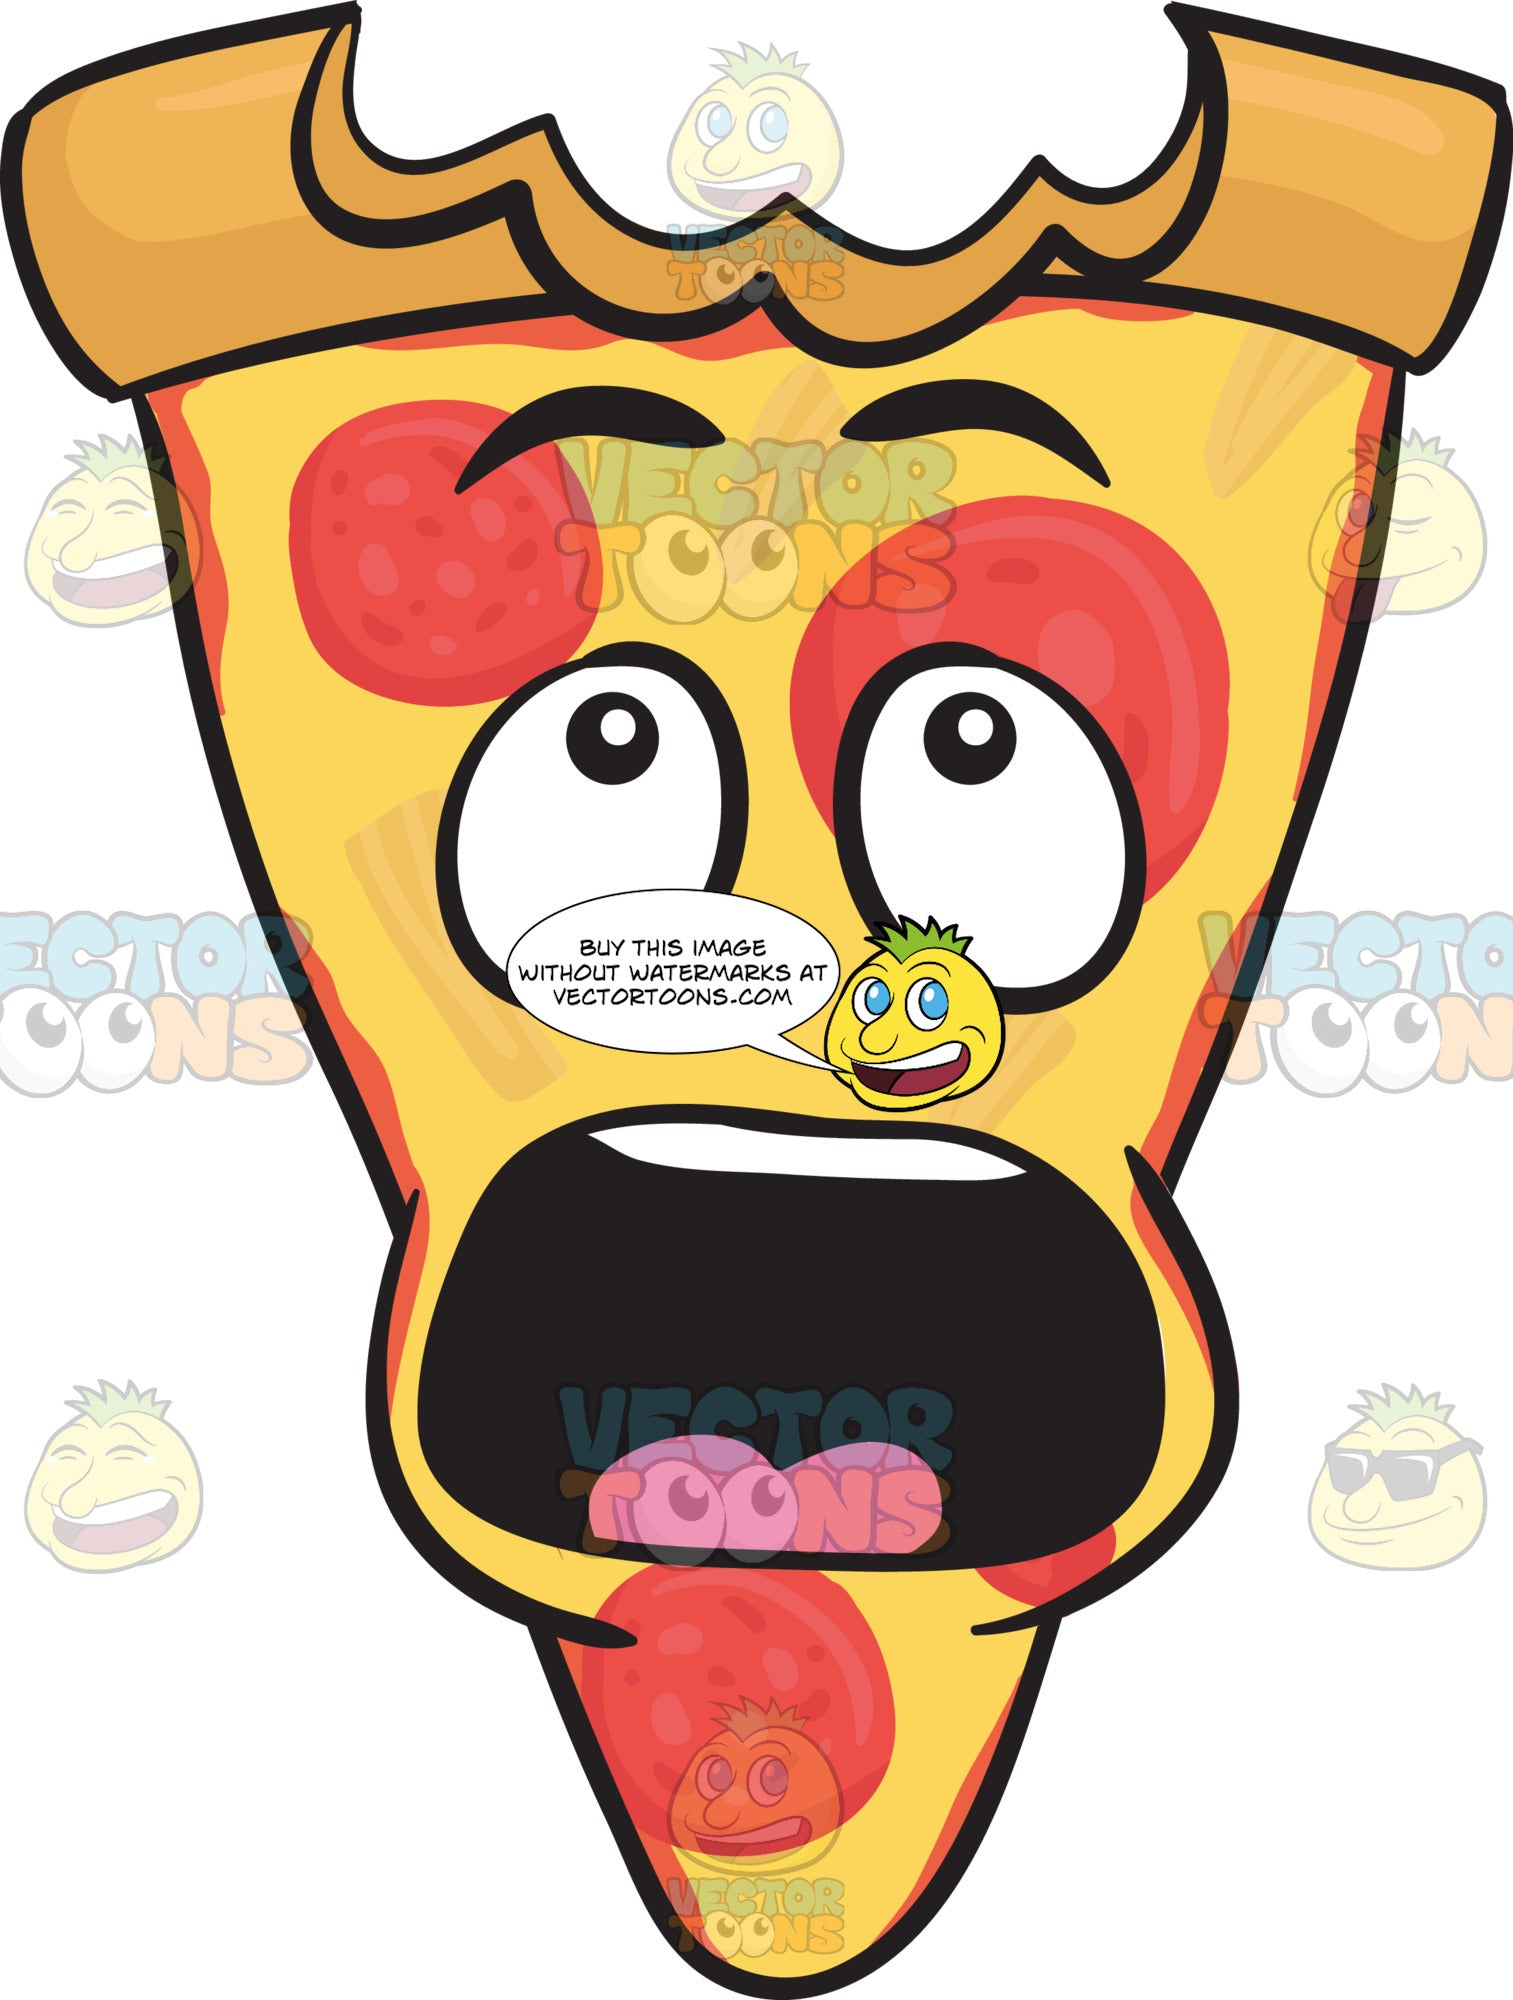 Slice Of Pepperoni Pizza Shocked With Big Bite Mark On Crust Emoji Clipart Cartoons By Vectortoons